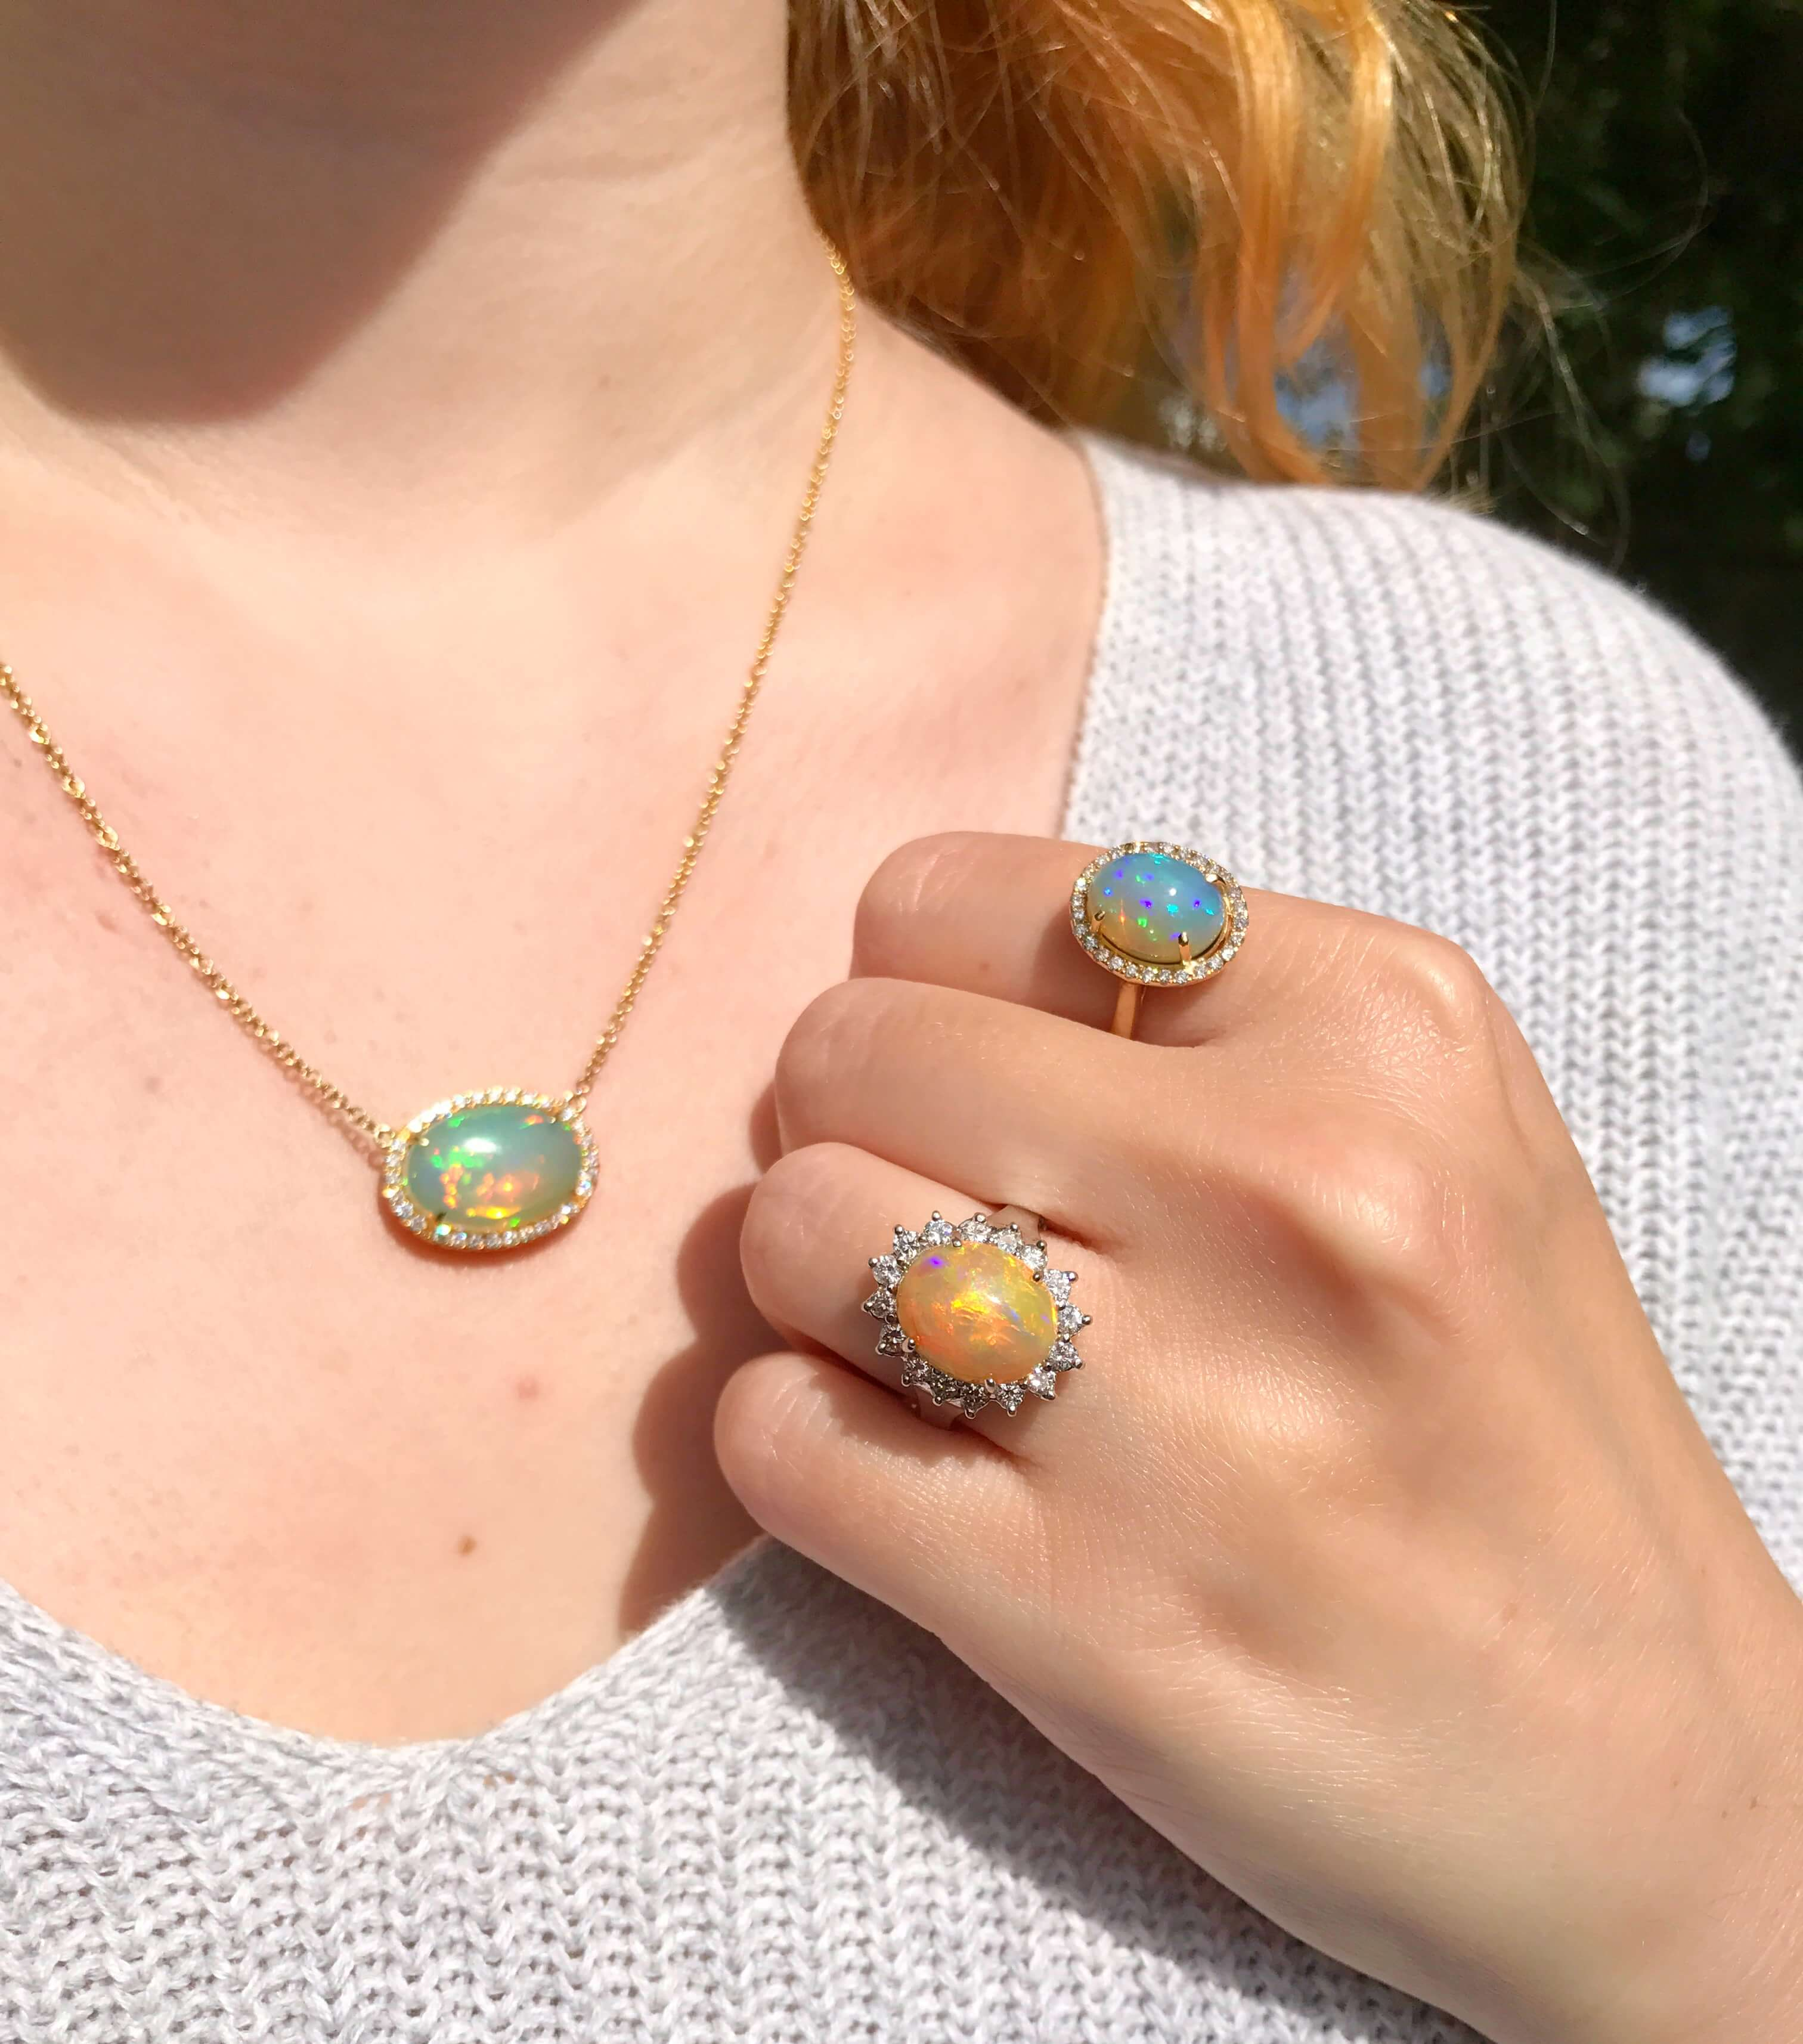 Opal rings and pendant